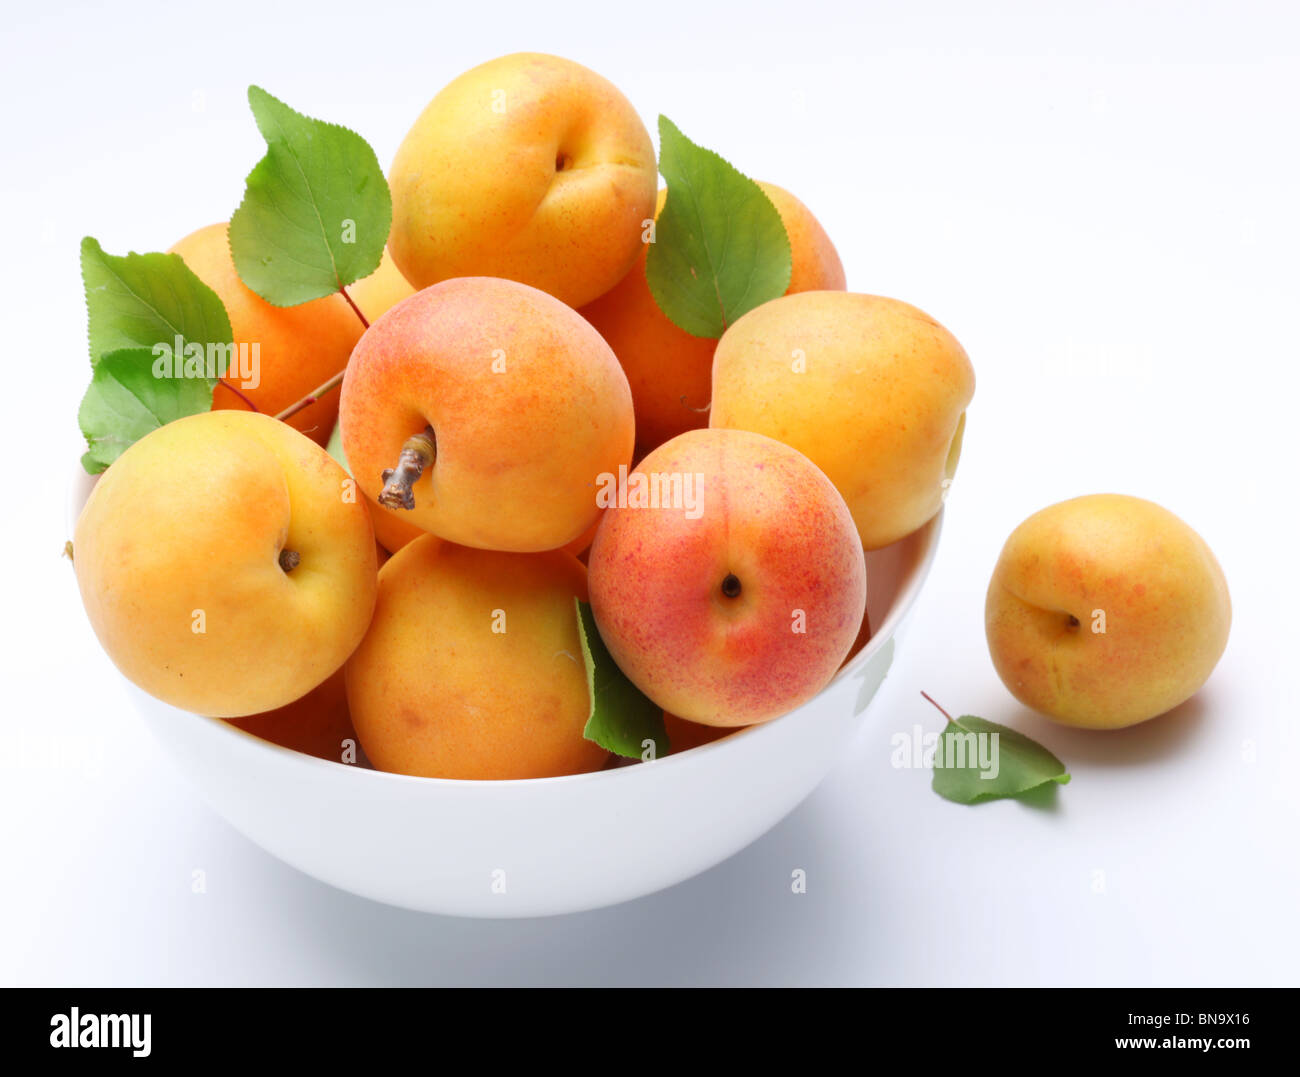 Crockery with mellow apricots. Isolated on a white background. - Stock Image